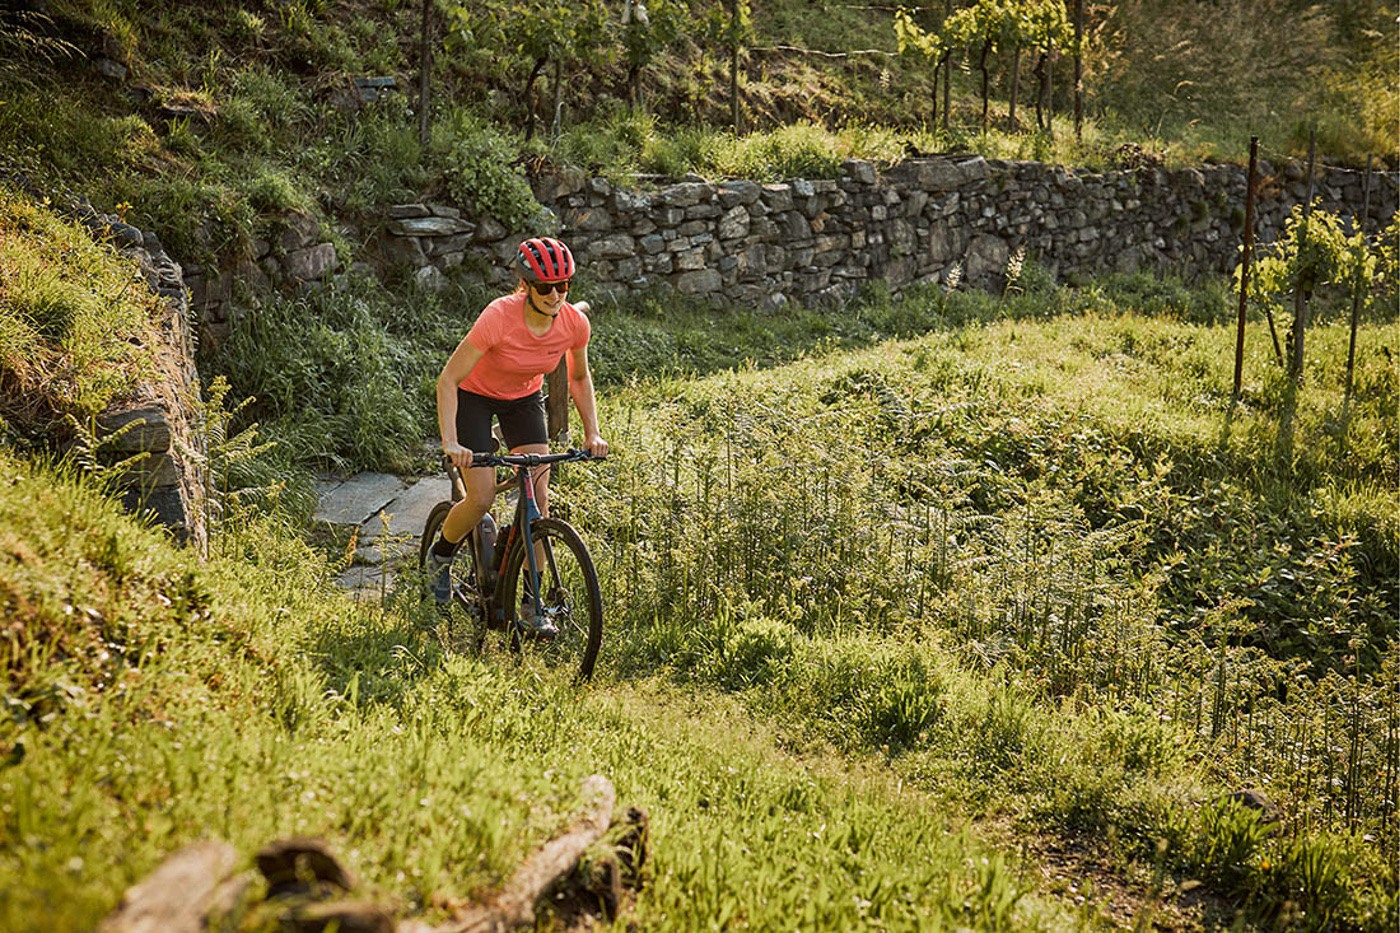 BMC Alpenchallenge AMP Cross, una e-bike para Gravel